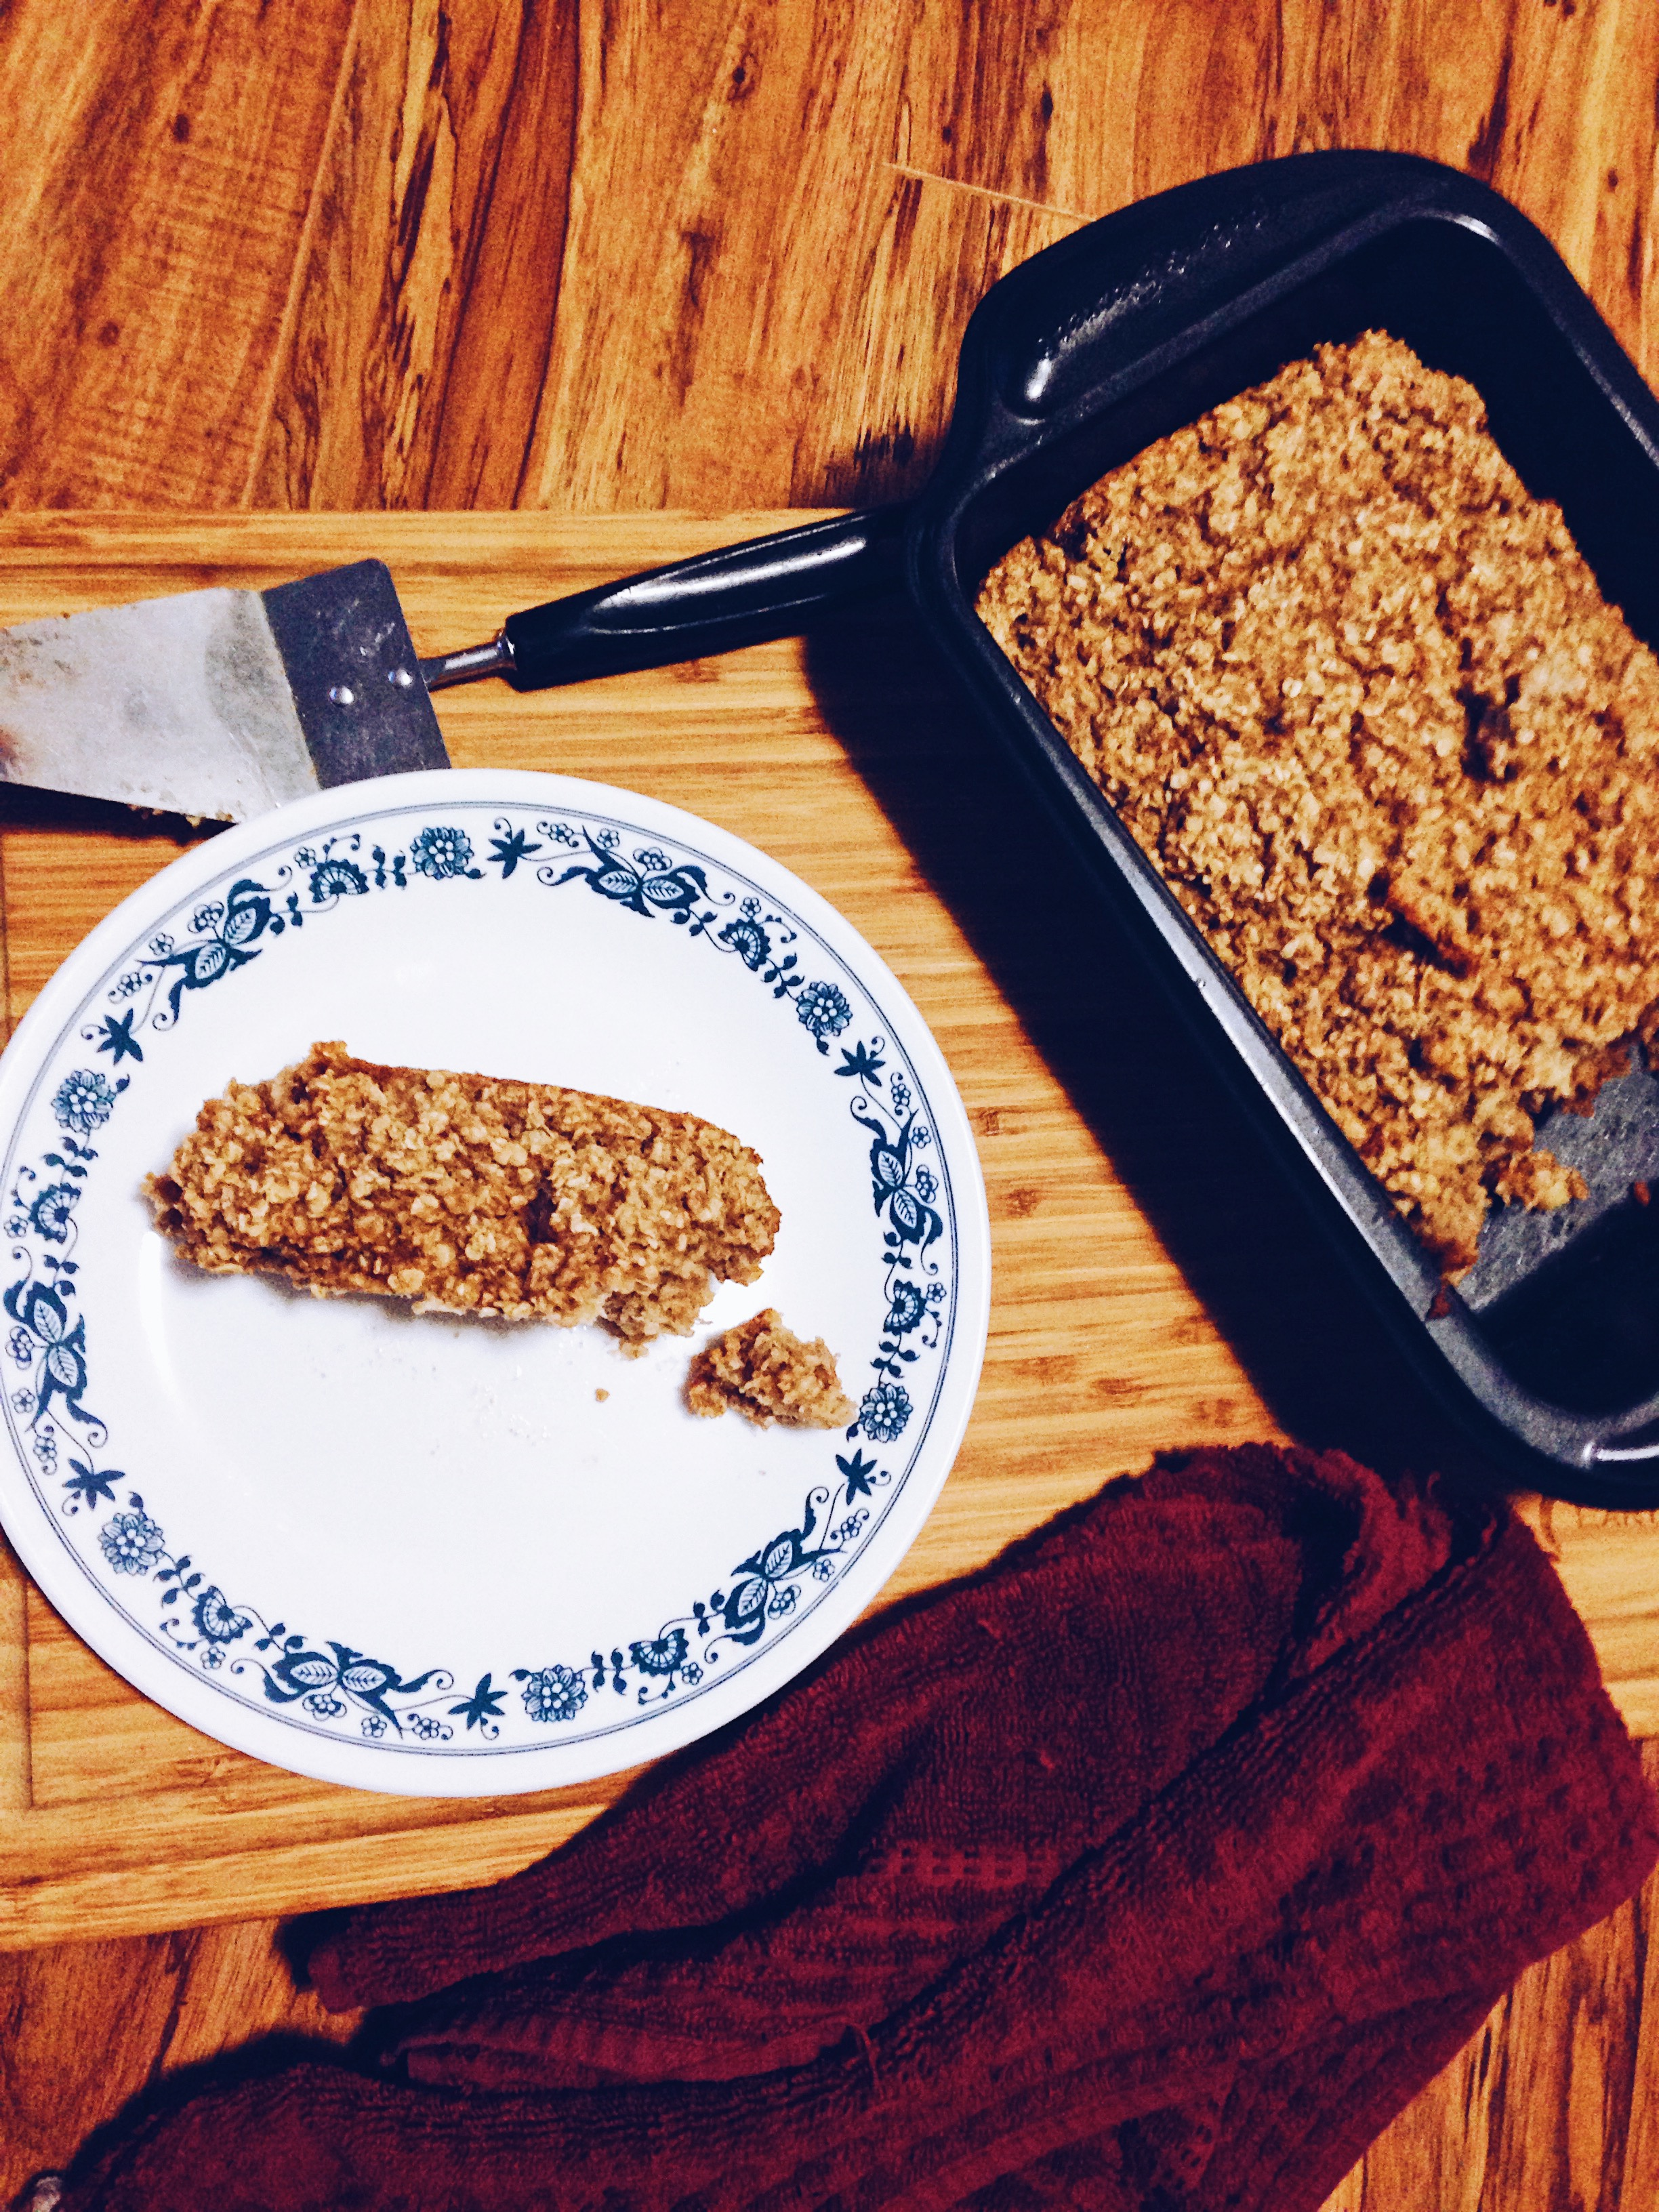 Homemade peanut butter banana baked oatmeal. Vegan. Gluten free. Recipe. Breakfast